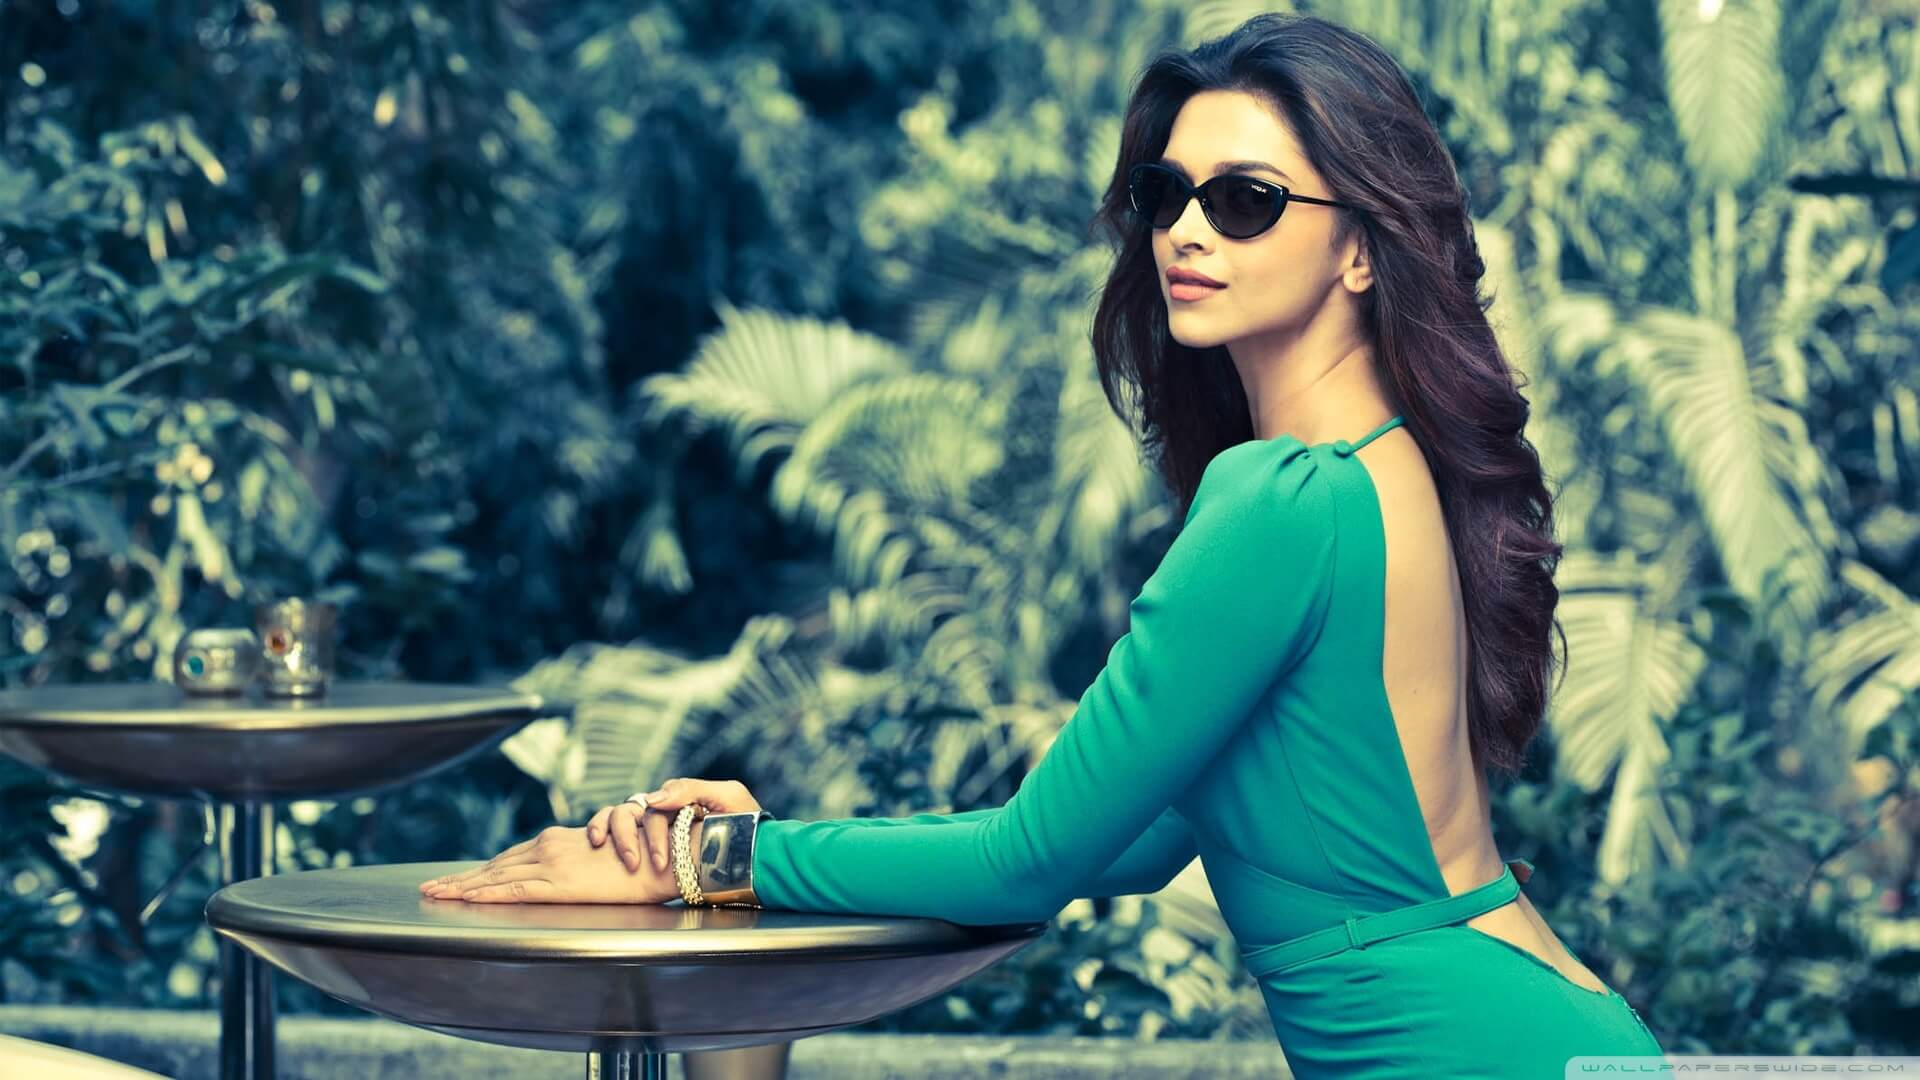 Deepika Padukone Wedding, Age, Height, Photos(images), Net Worth, Movies, Date Of Birth, Biography, Husband, Sister, Song, Family, Mother, Father, Hairstyle, Education, Awards, History, Det ( (55)